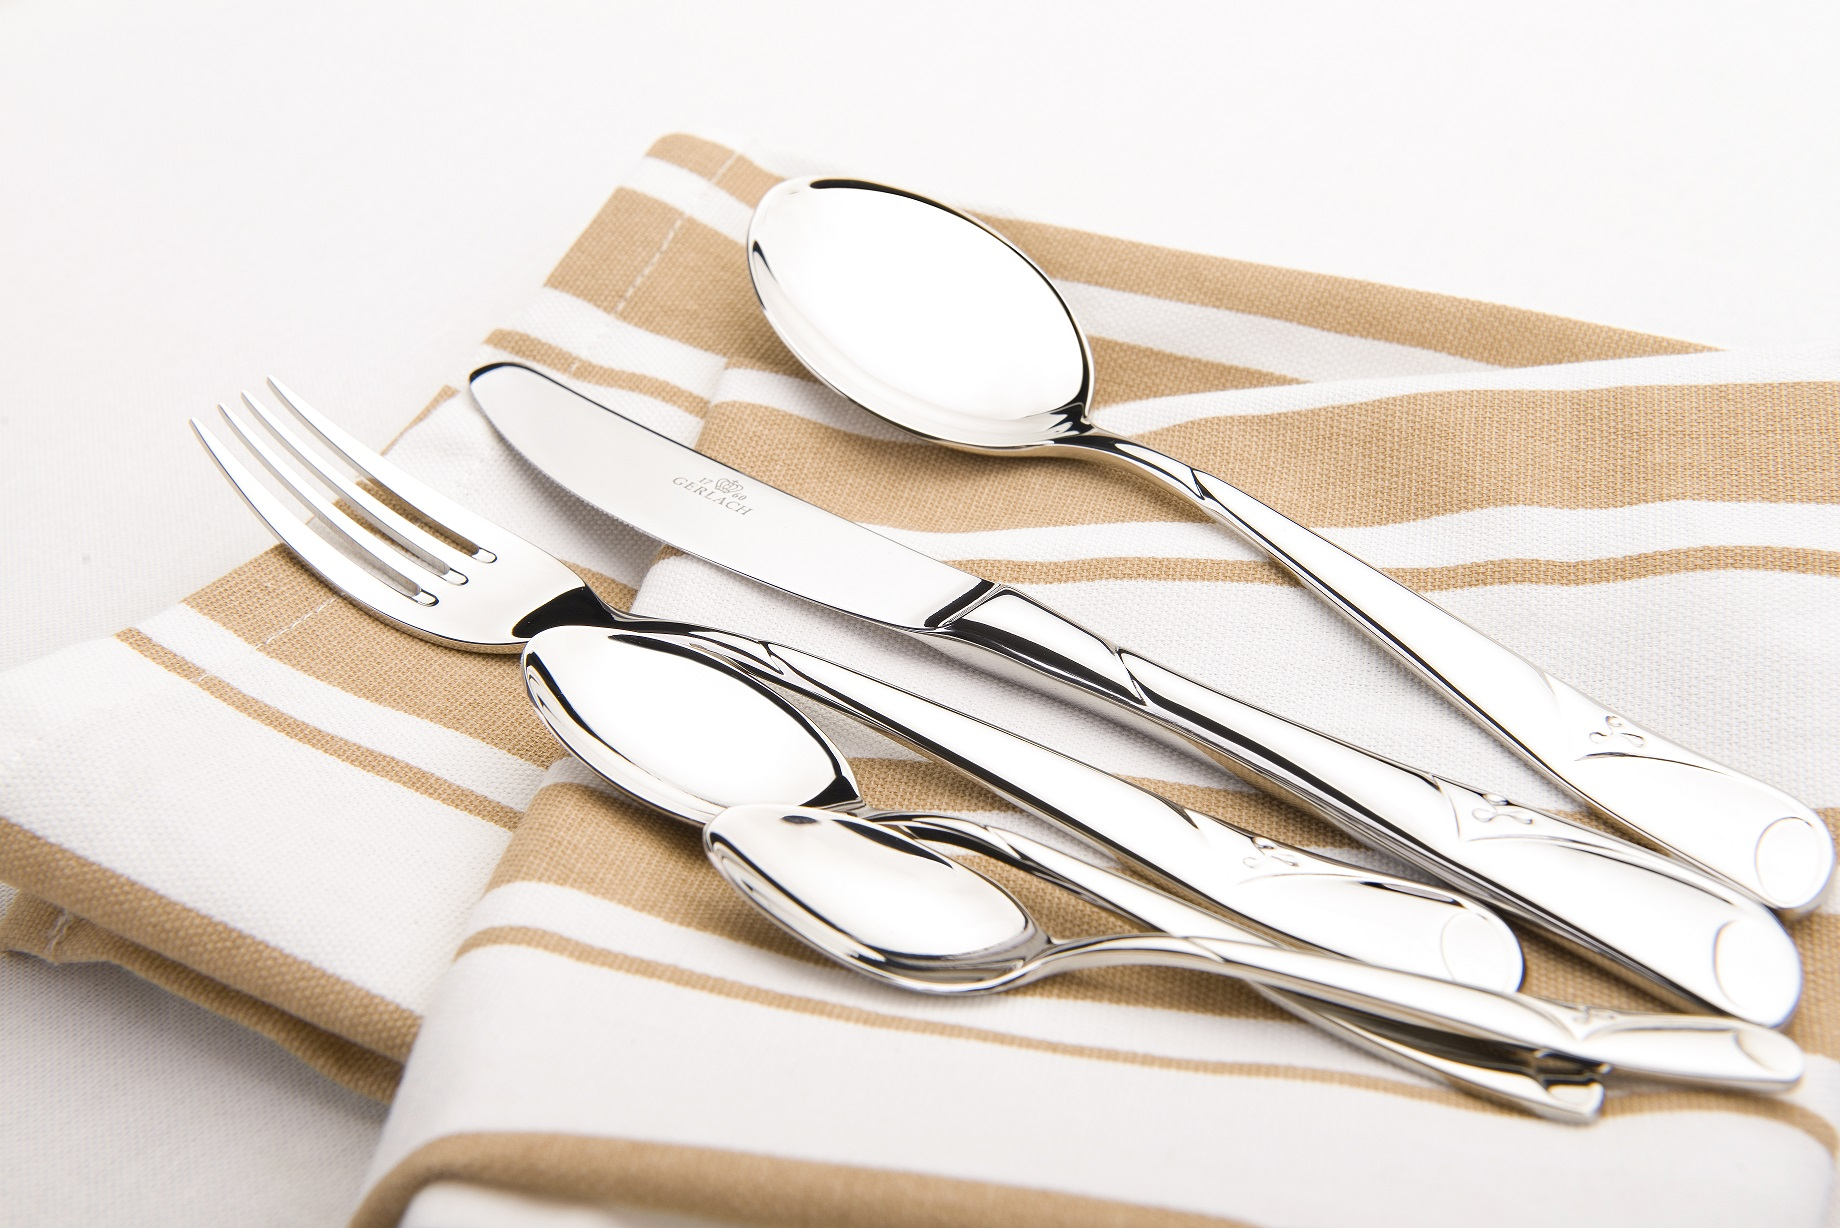 The Symfonia cutlery